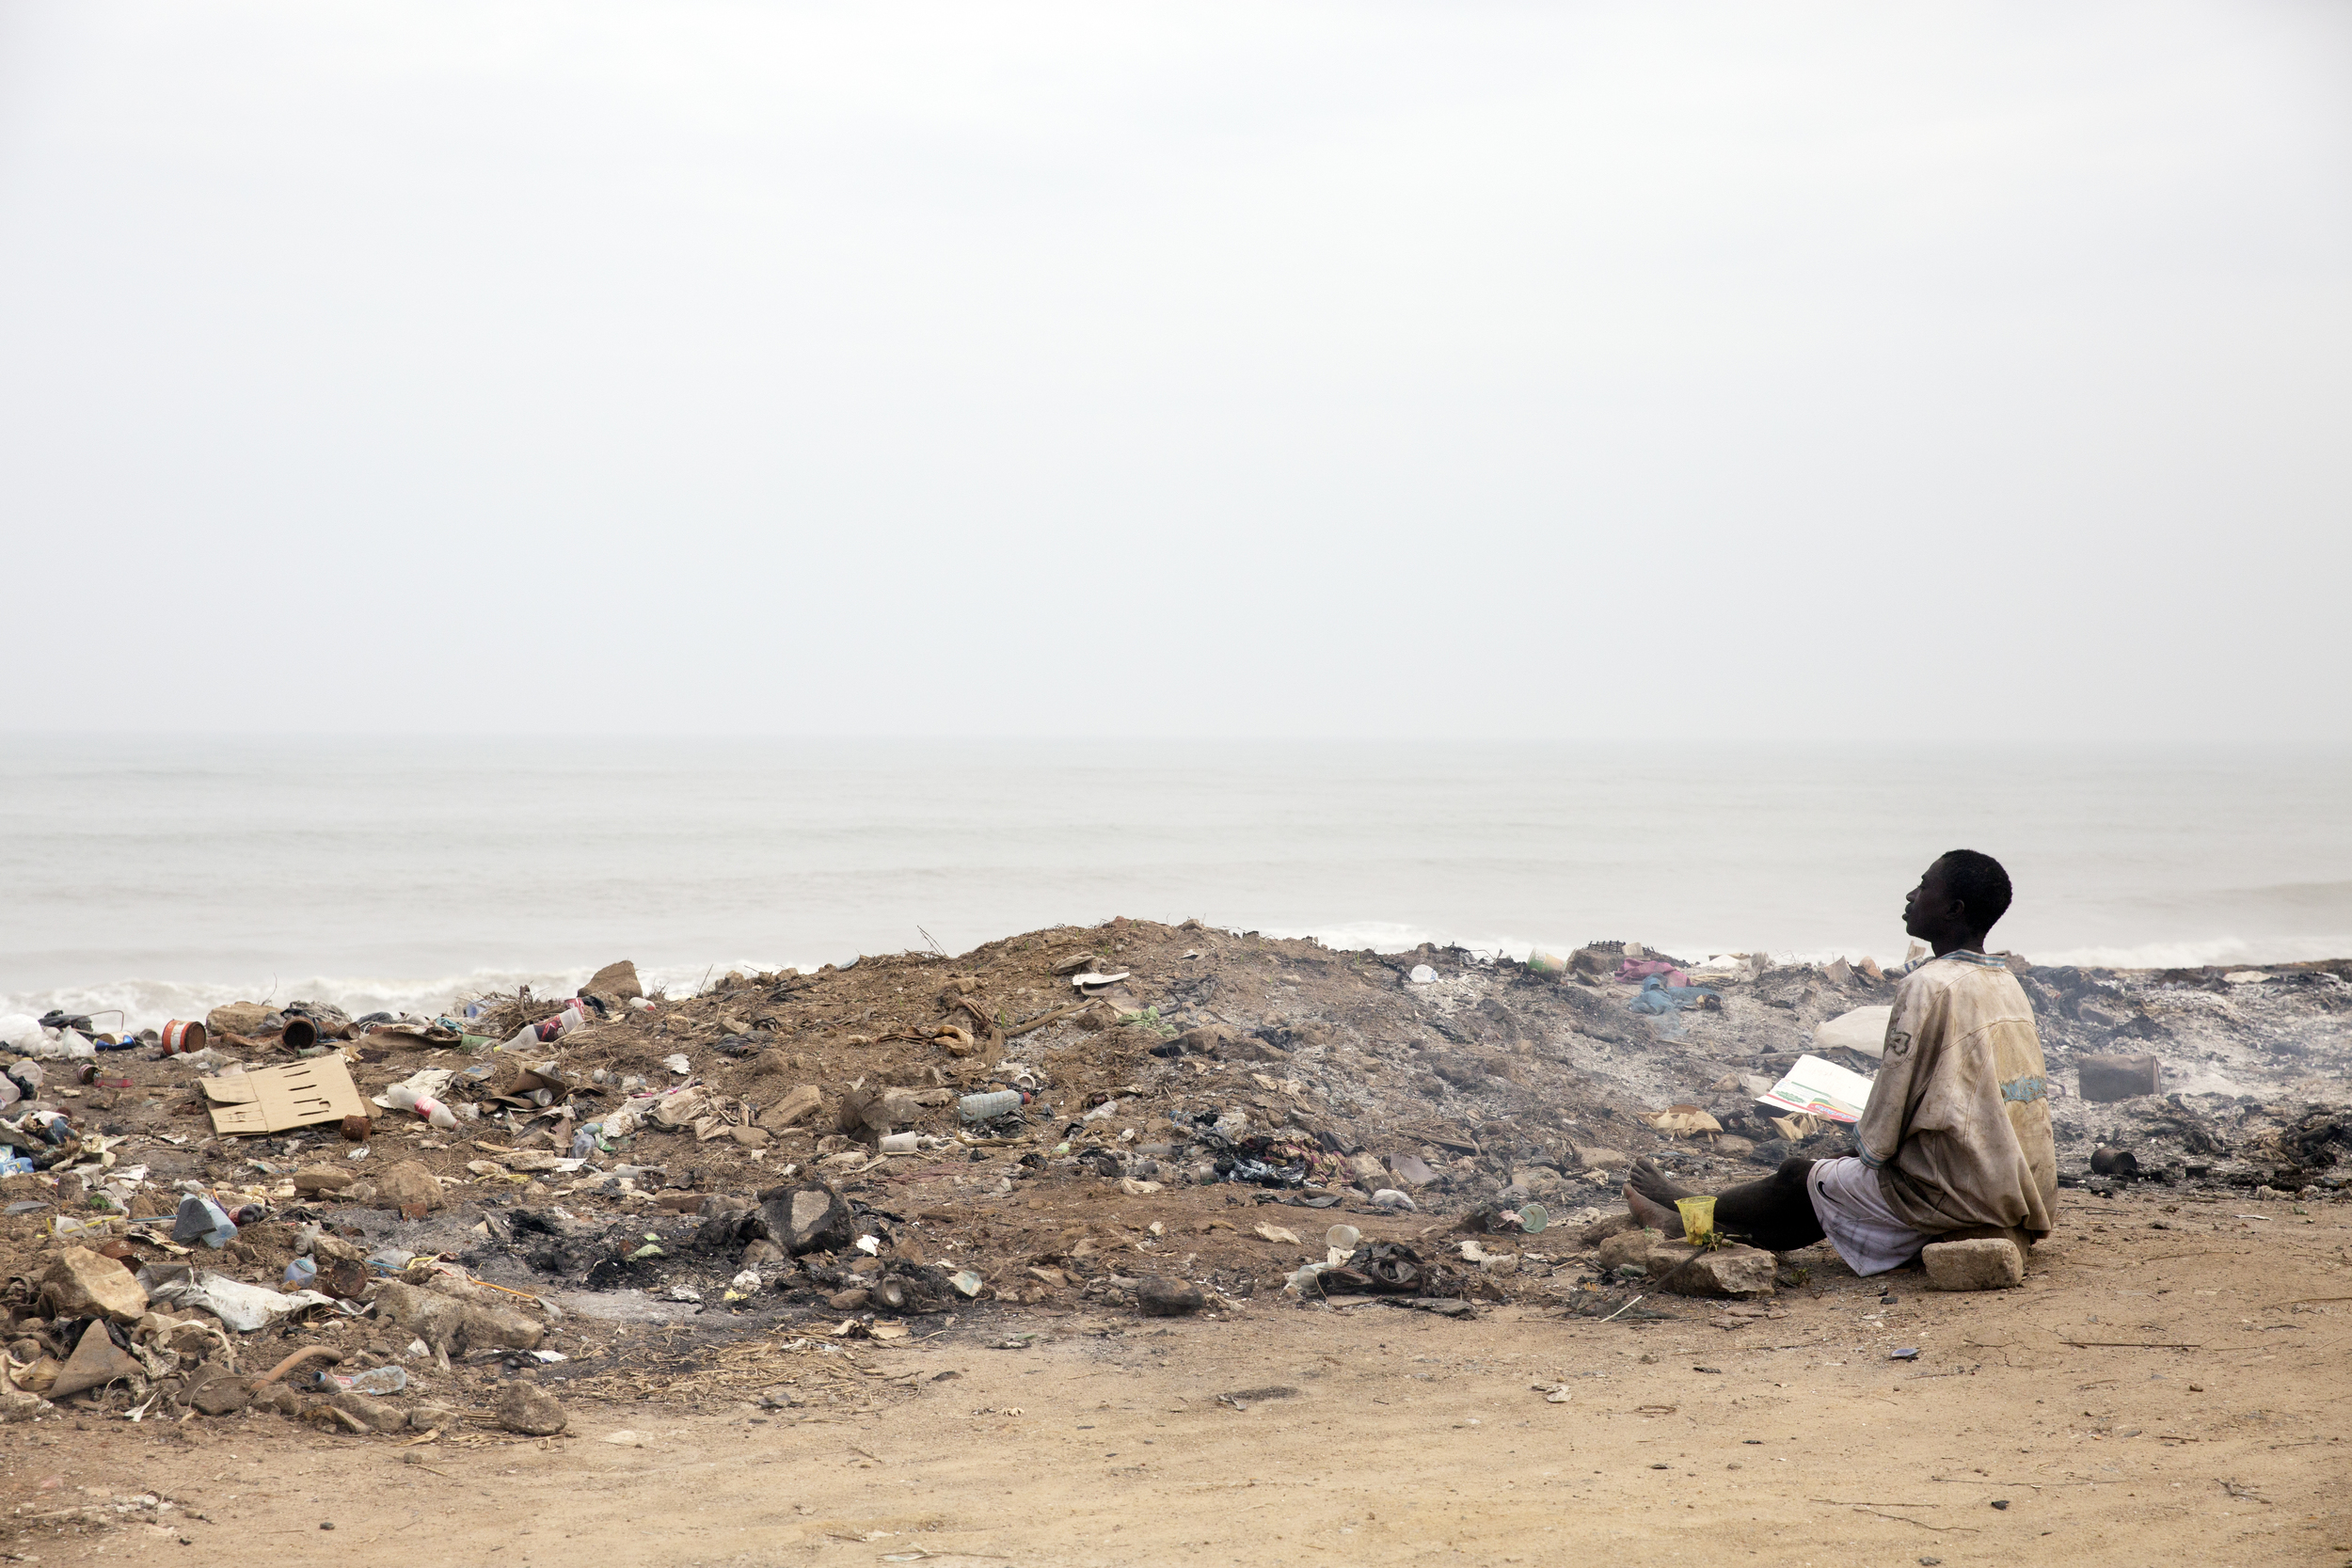 The man praying in front of the trash... I can't even describe how peaceful the look on his face was.